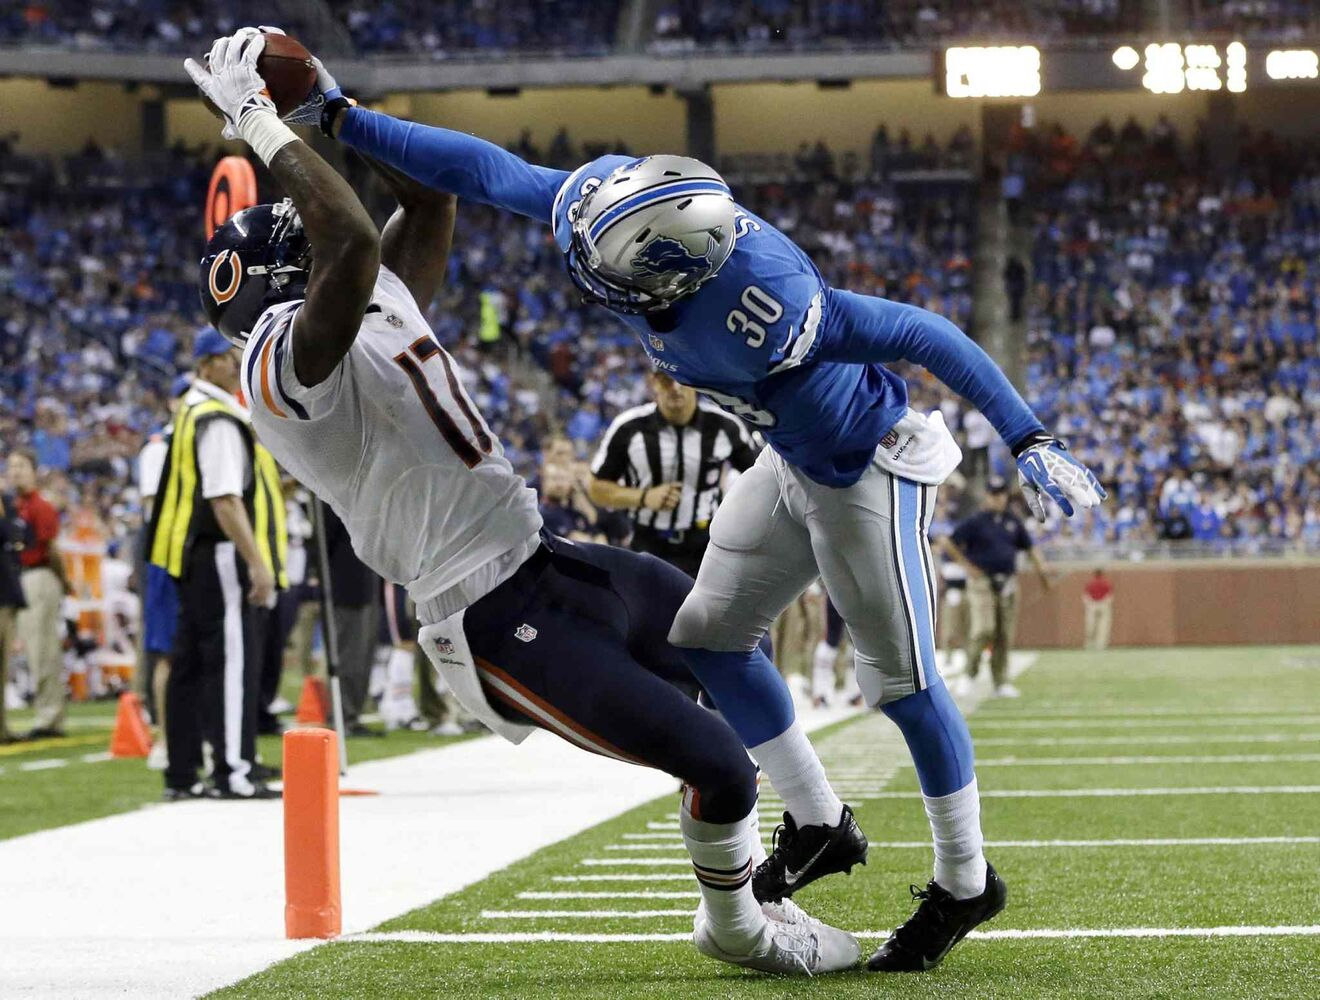 Chicago Bears wide receiver Alshon Jeffery makes a 14-yard TD reception against Detroit Lions cornerback Darius Slay in the Lions' 40-32 win at Ford Field in Detroit, Sunday.